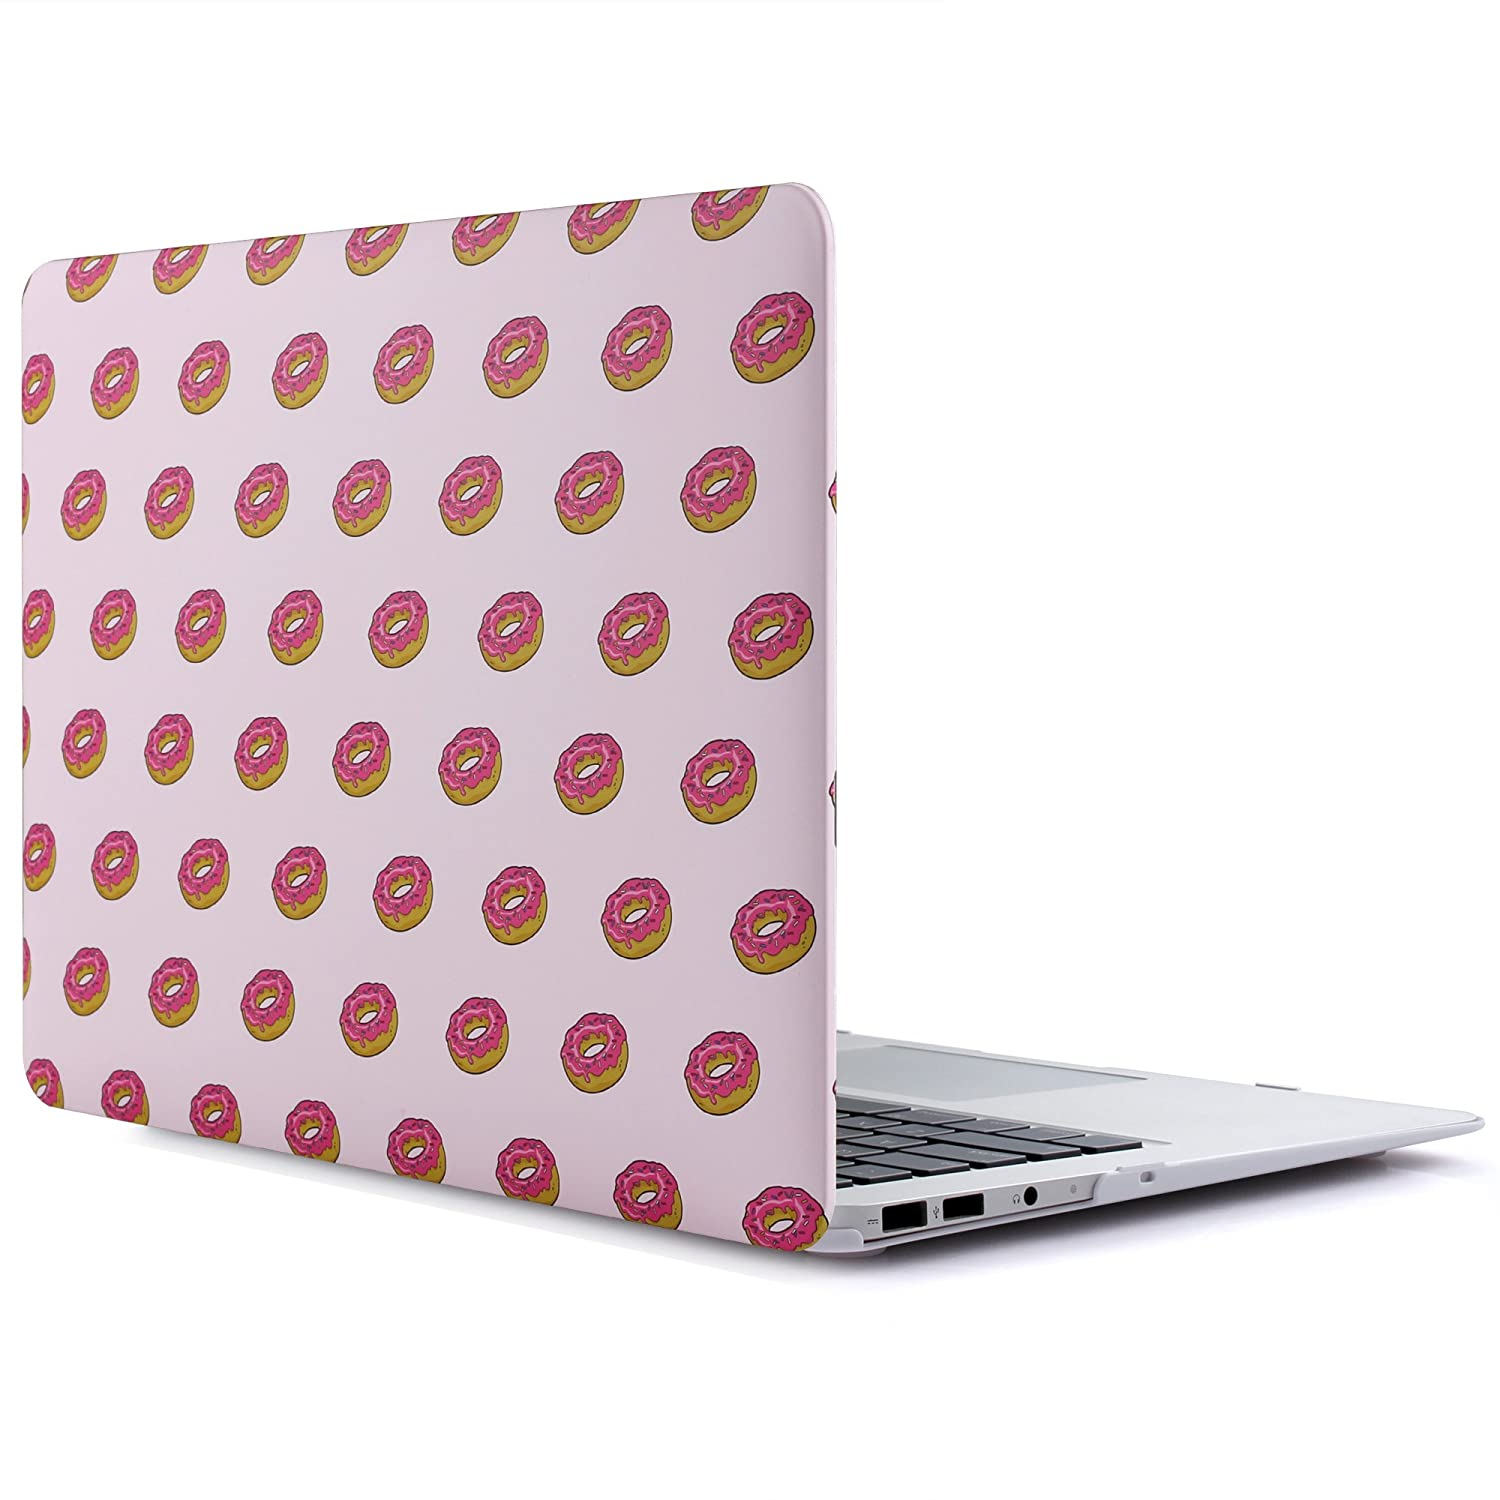 RENPHO Matte Rubber Coated Plastic Hard Case Cover for MacBook Air 13 inch Model: A1369 and A1466 - Tropical Leaves